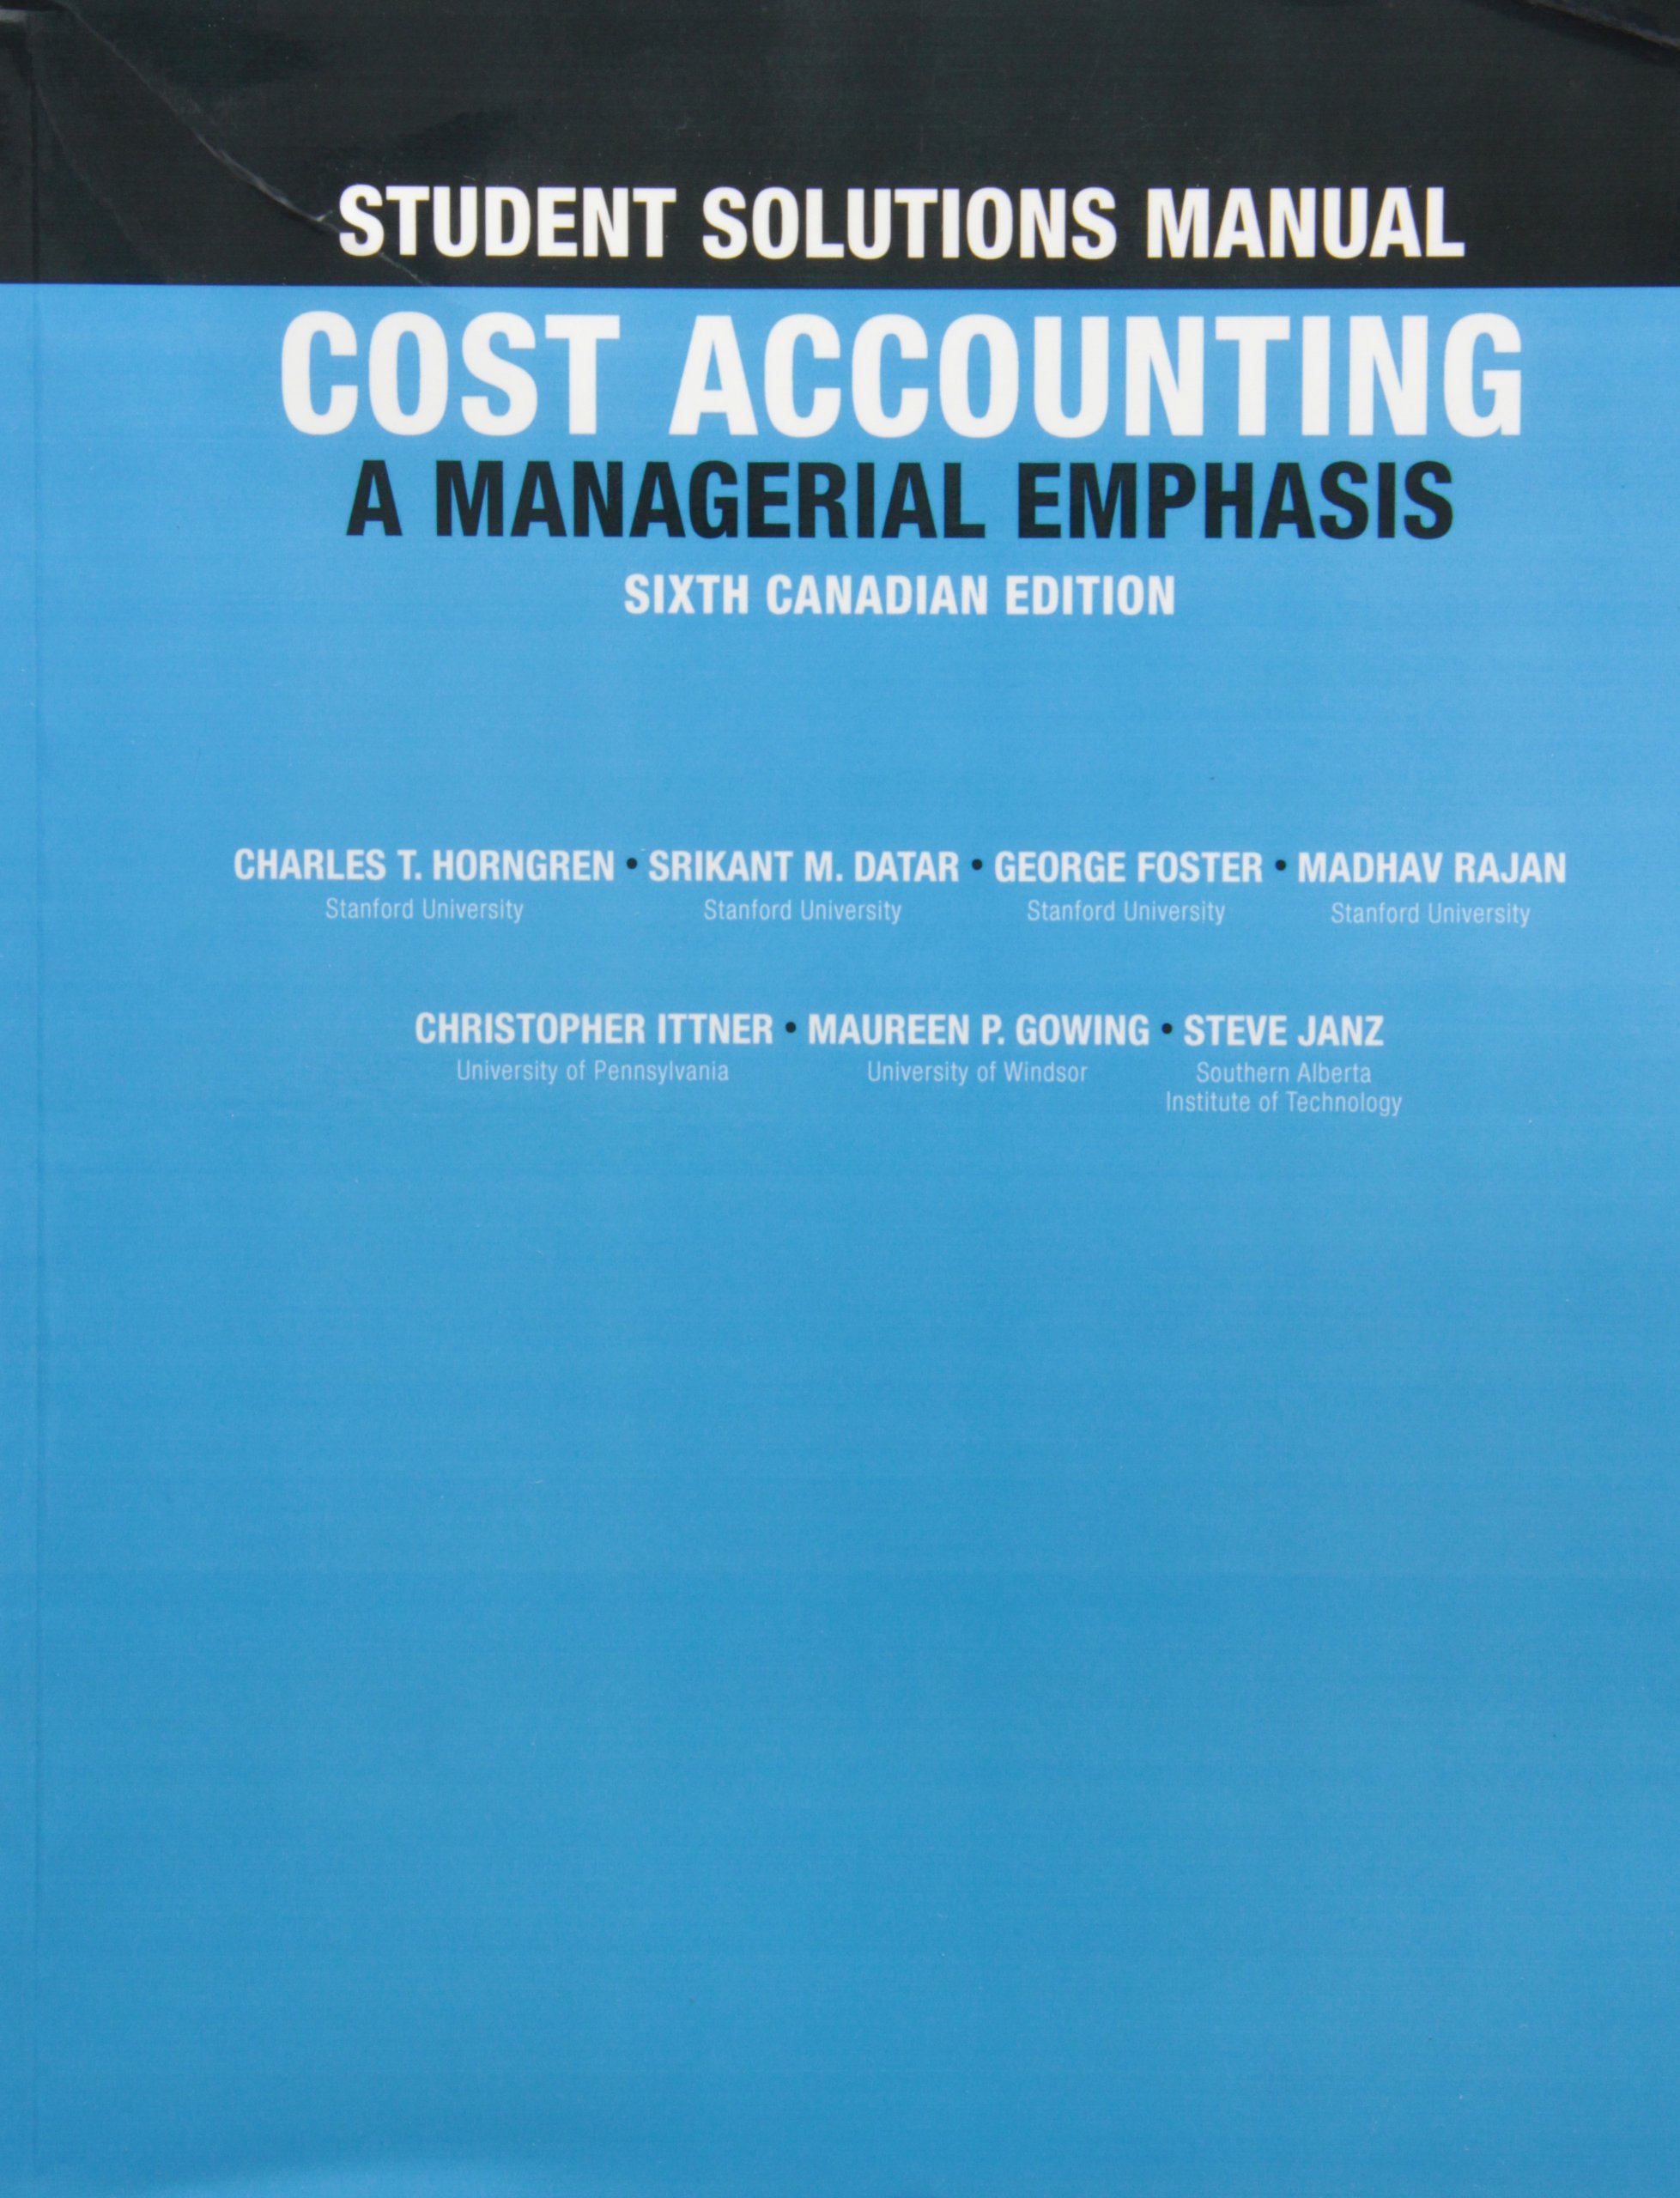 Student Solutions Manual for Cost Accounting: A Managerial Emphasis, Sixth  Canadian Edition: Charles T. Horngren, Srikant M. Datar, George Foster, ...